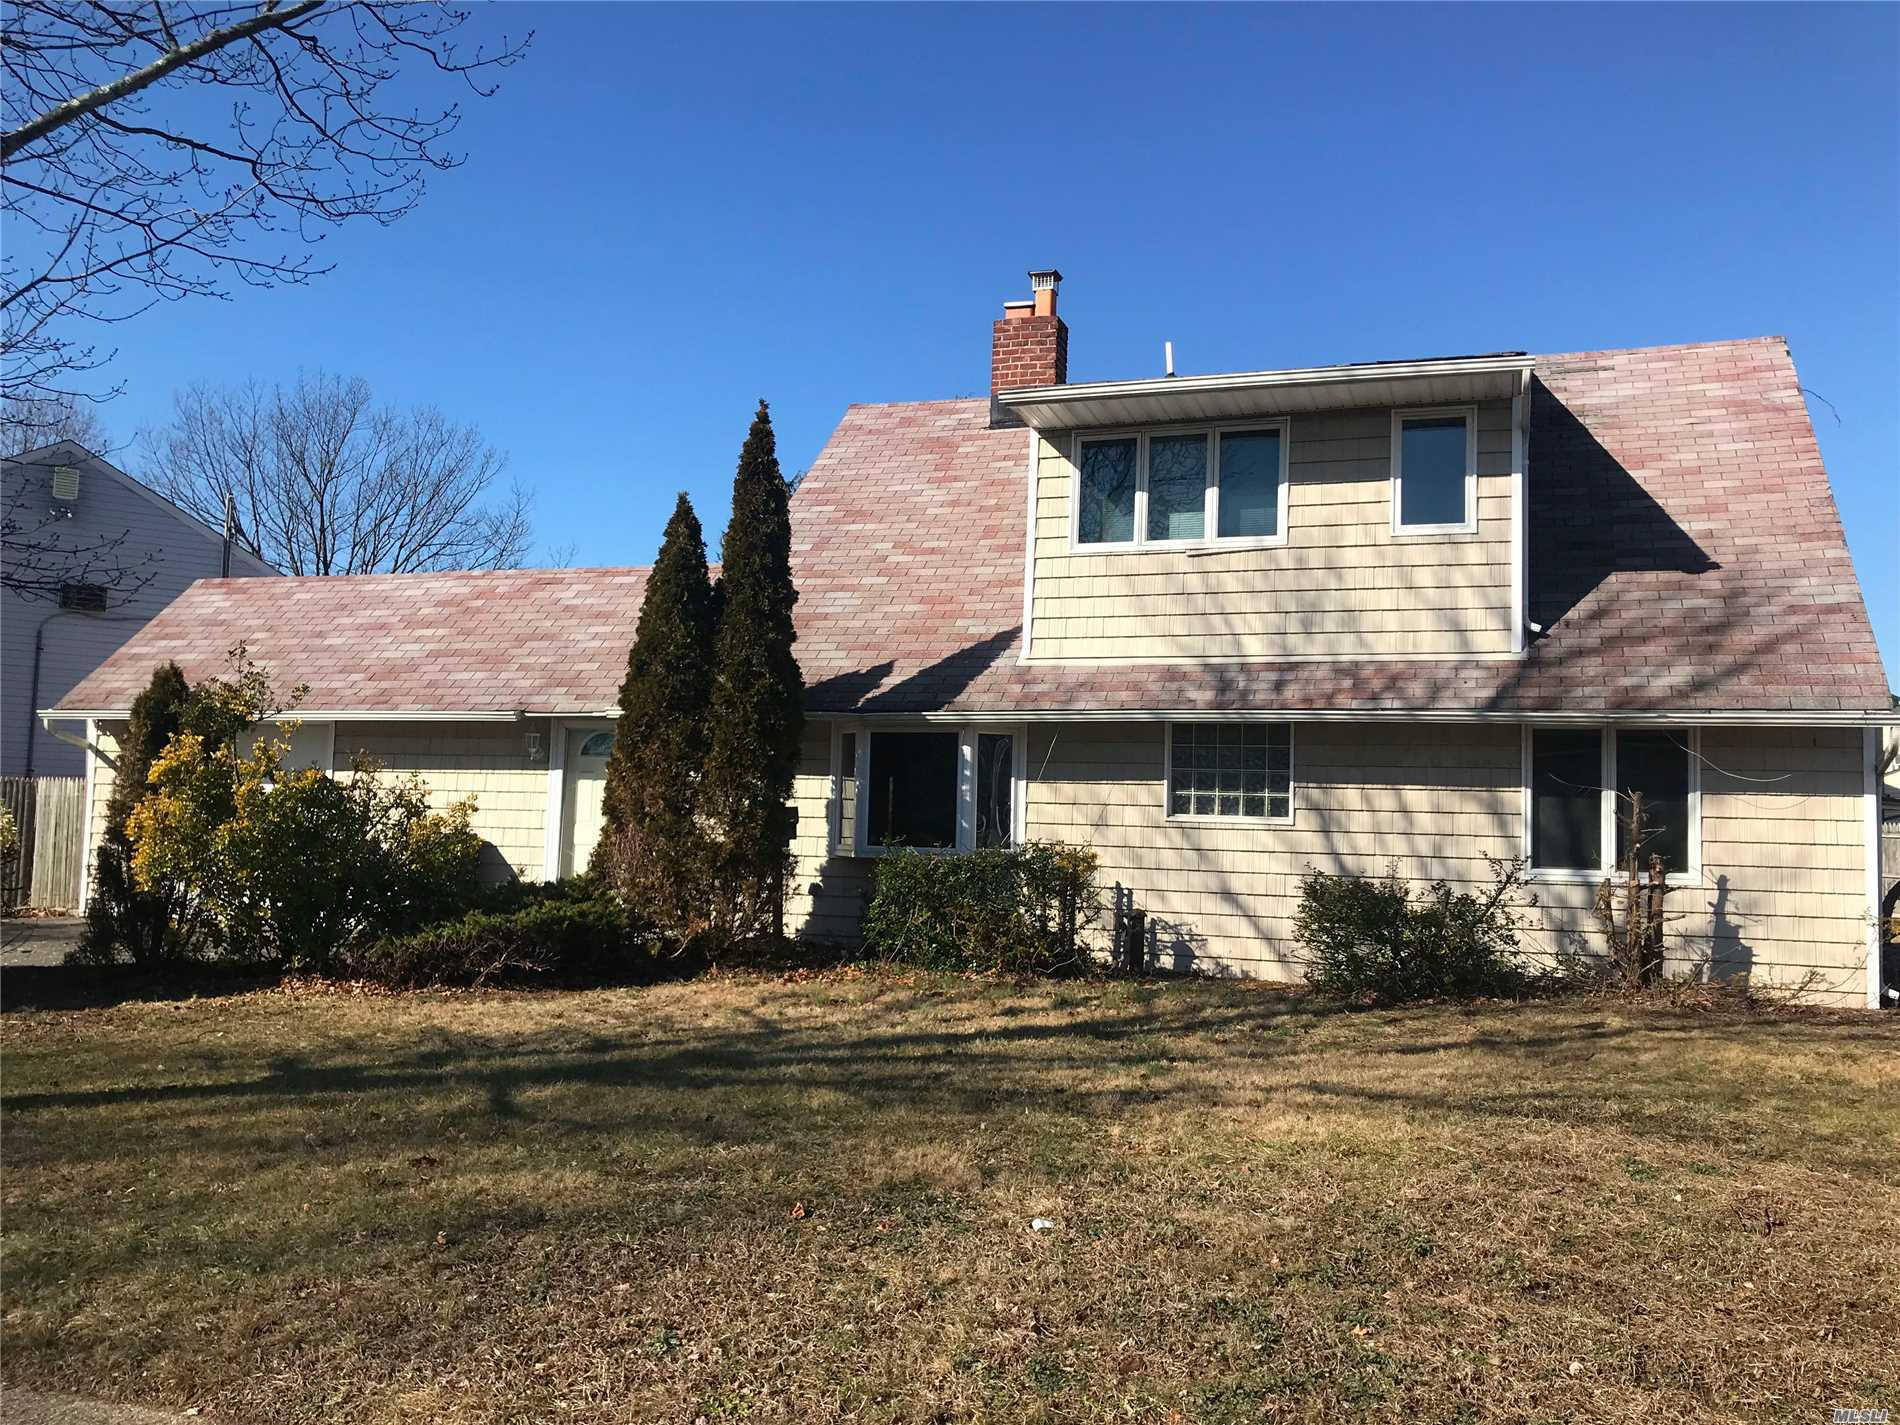 Long Awaited Cape Style, 4Bed/2 Full Baths Single Family In Levittown School District; Corner Property, 116X120 Lot Size; Endless Possibilities To Make This Your Own; Sliders Leading To The Park-Like Backyard. Property Is Within Walking Distance Of Dutch Lane Elementary And The Levittown Hall Community Pool. Minutes To Wantagh Pkwy